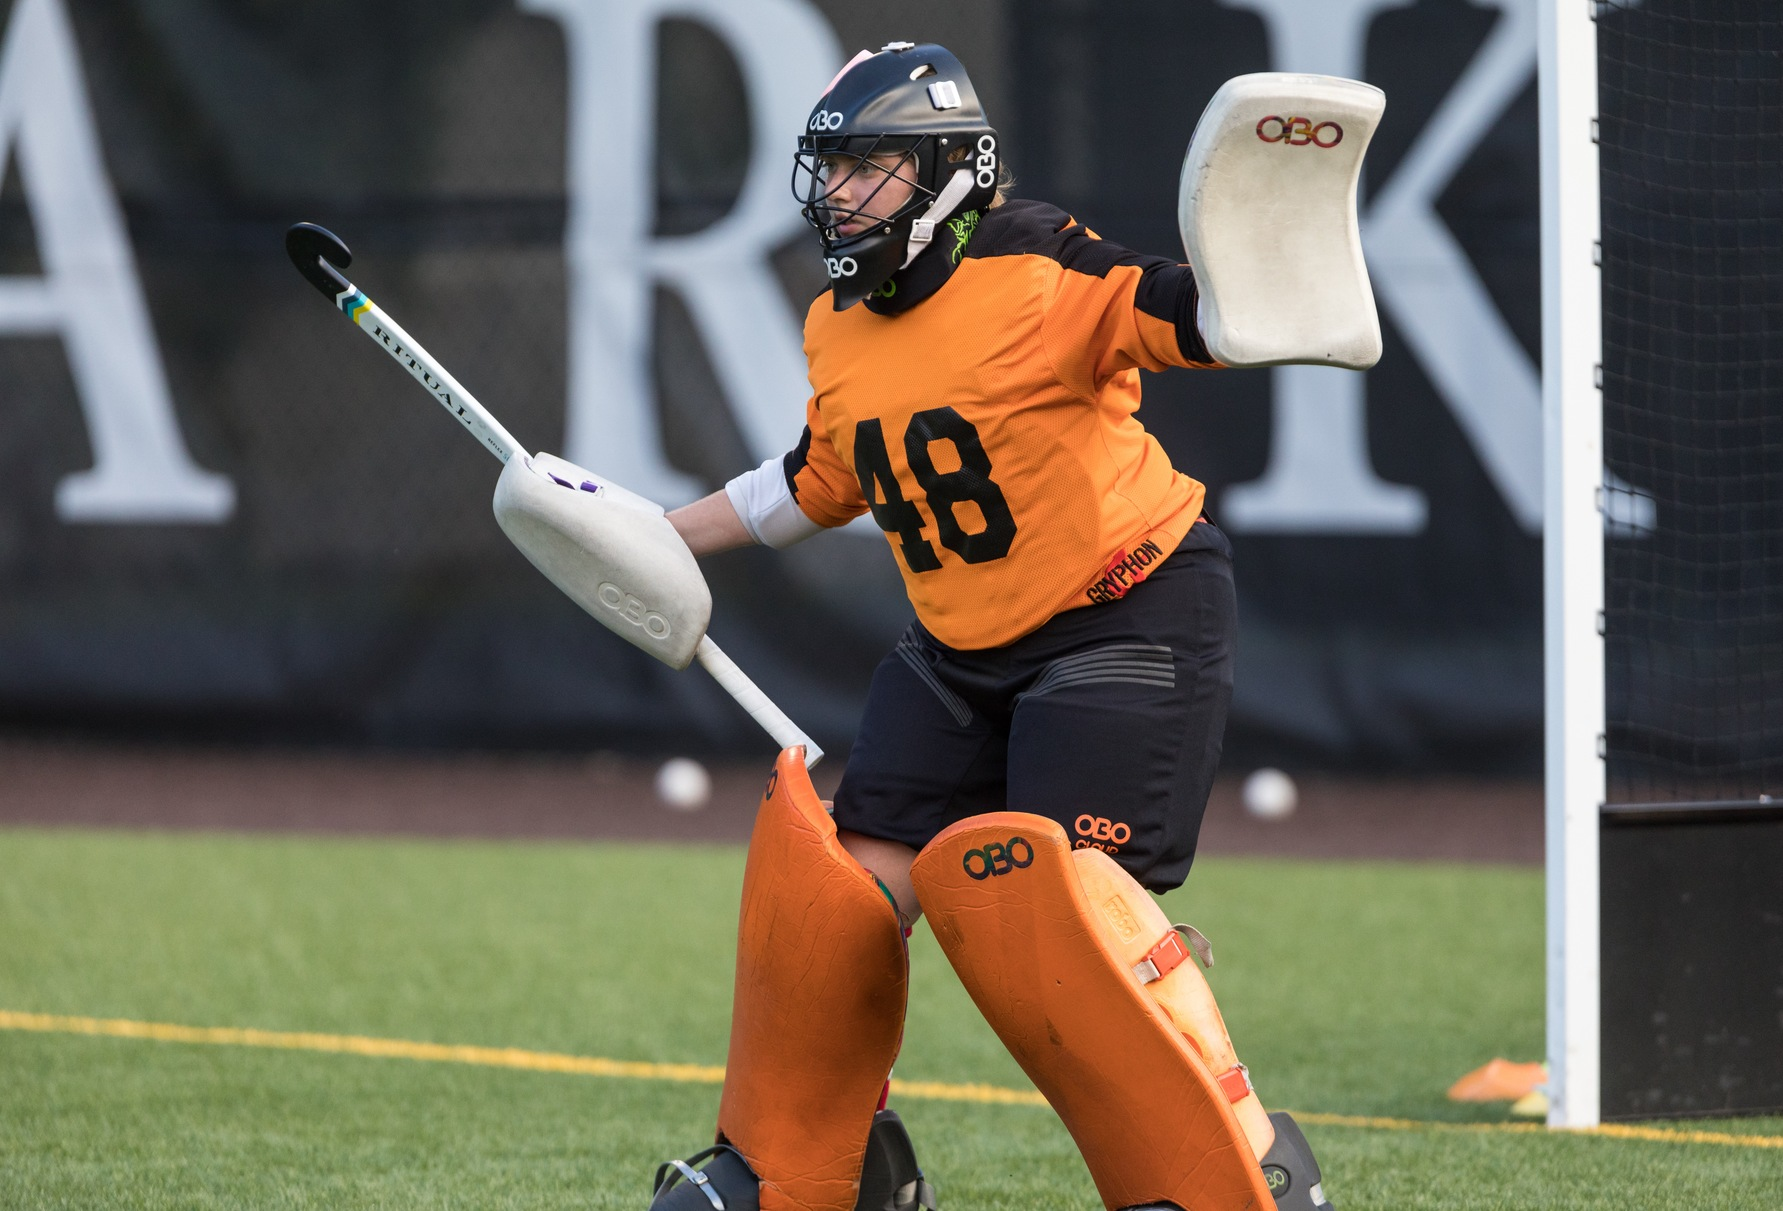 Michaud Posts Career High 26 Saves in Setback at Babson